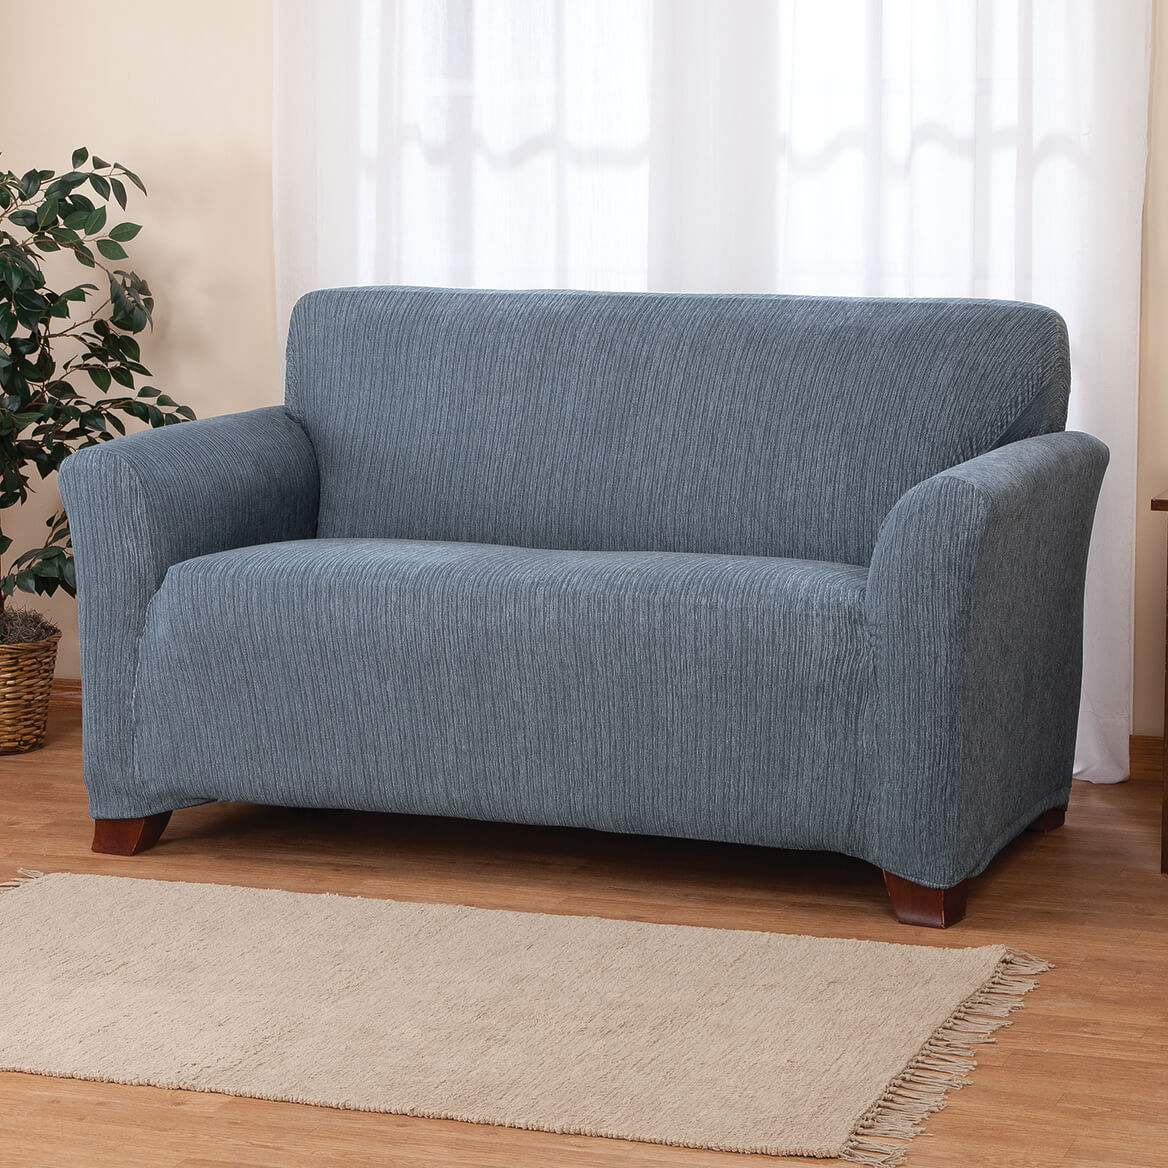 Wondrous Stretch Heather Sofa Cover Caraccident5 Cool Chair Designs And Ideas Caraccident5Info